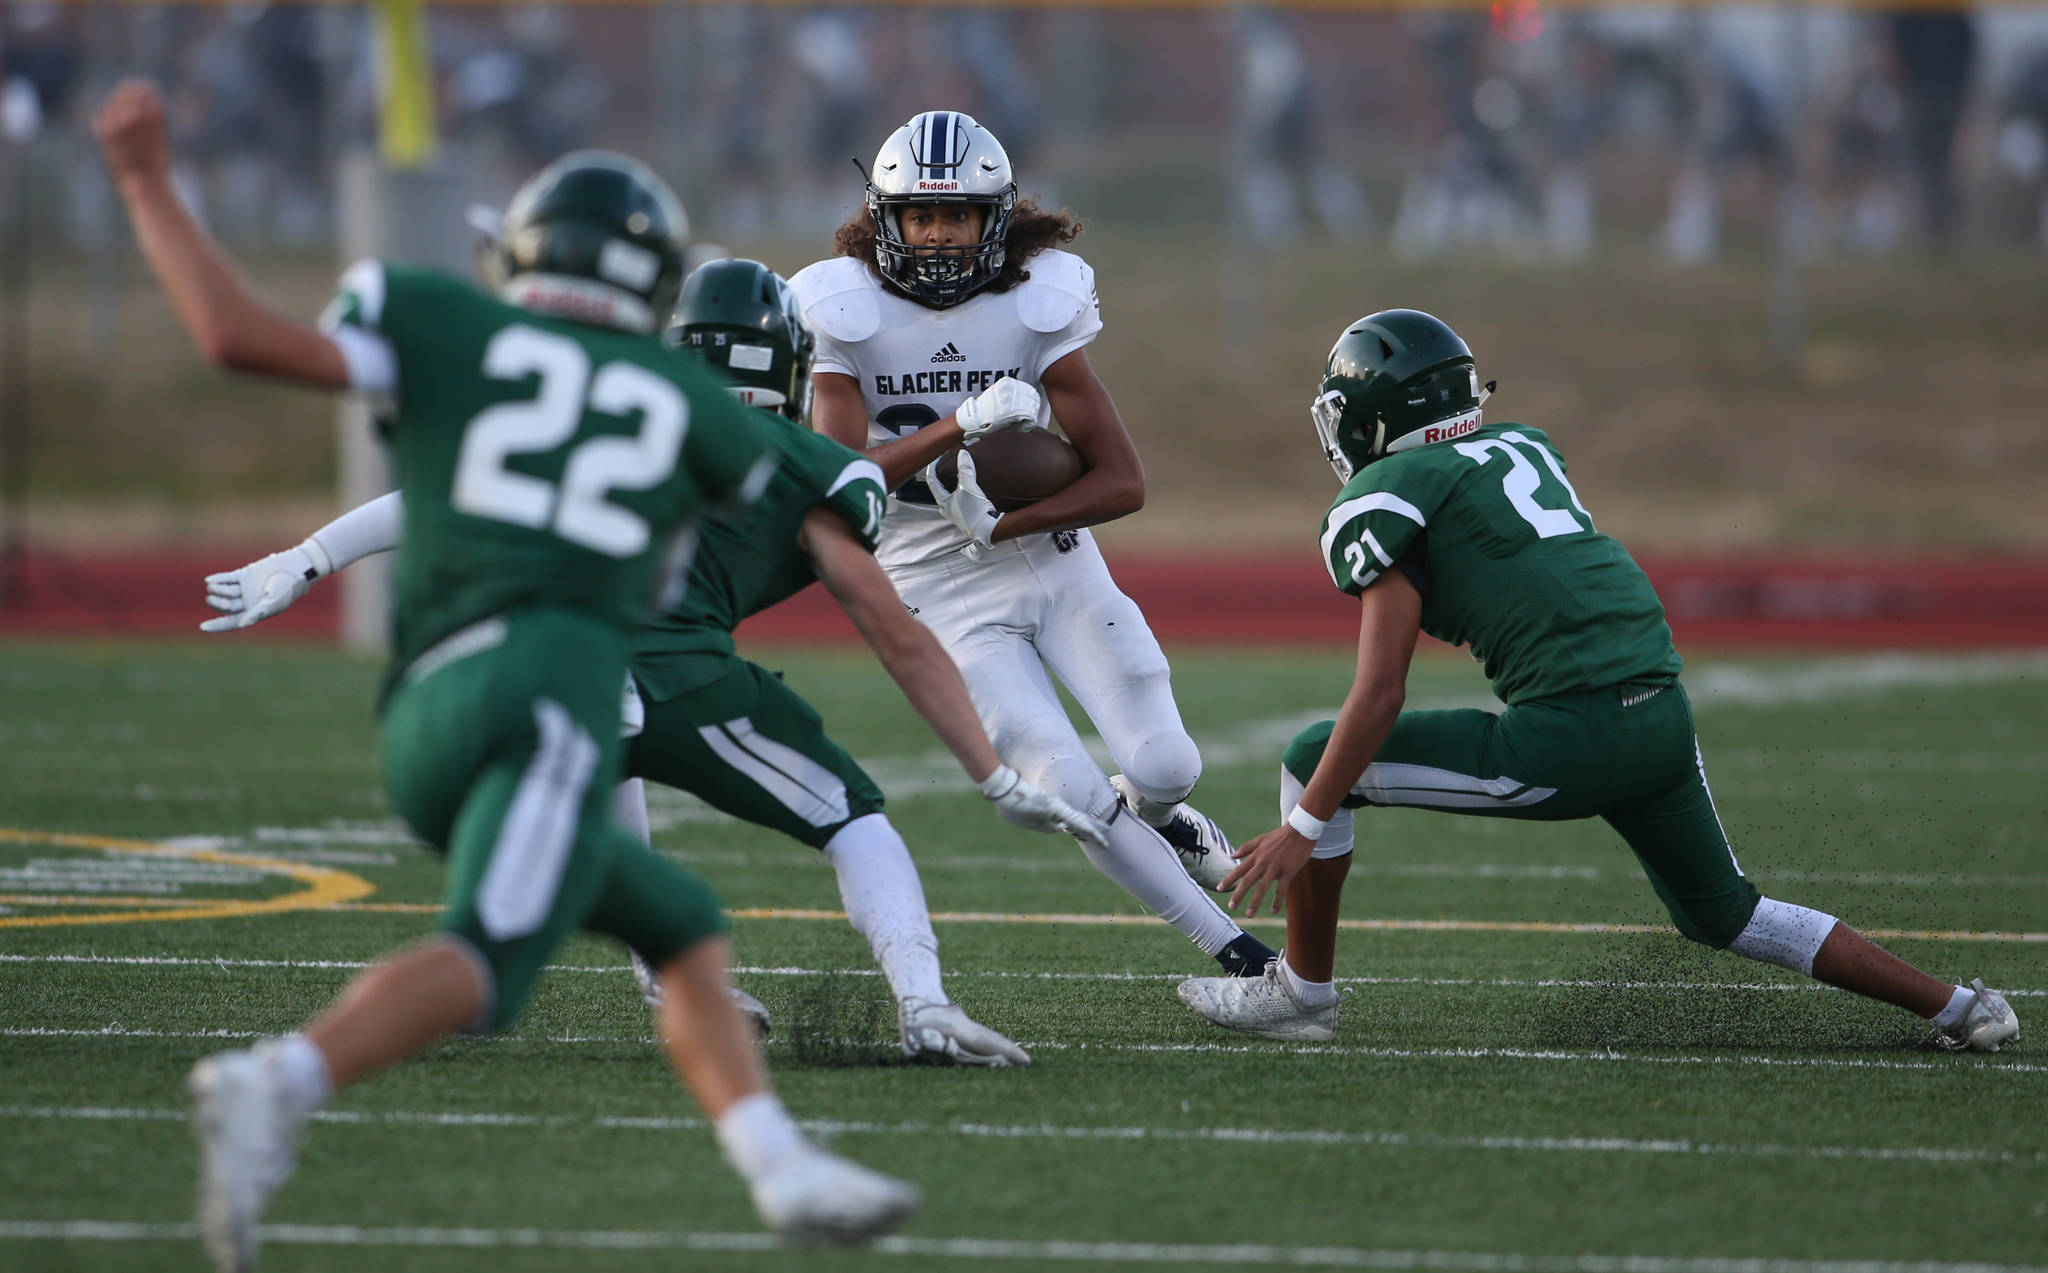 Glacier Peak beat Edmonds-Woodway 35-14, in the season opening football game for both teams, at Edmonds Stadium on Friday, Sept. 6, 2019 in Edmonds, Wash. (Andy Bronson / The Herald)